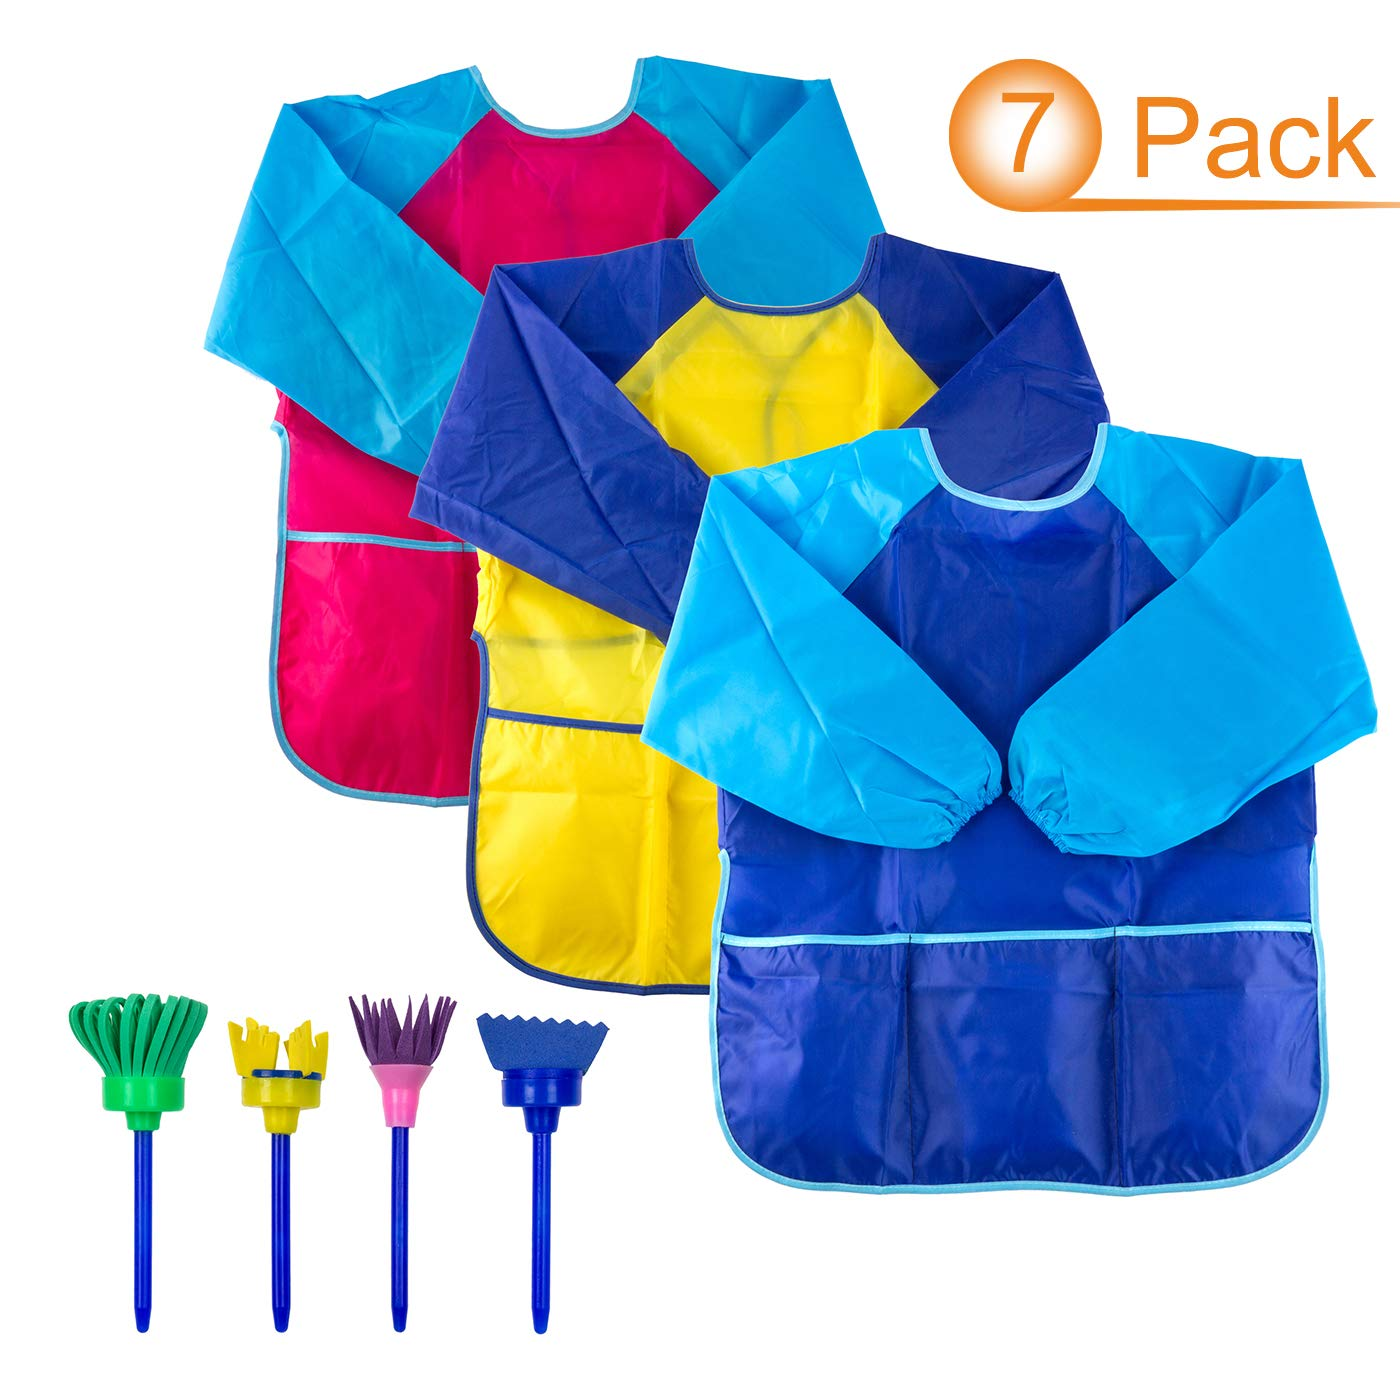 3pack Kids Art Smocks with Roomy Pockets Colored Painting Aprons with 4 Sponge Painting Brushes for Age 2-6 Solovey